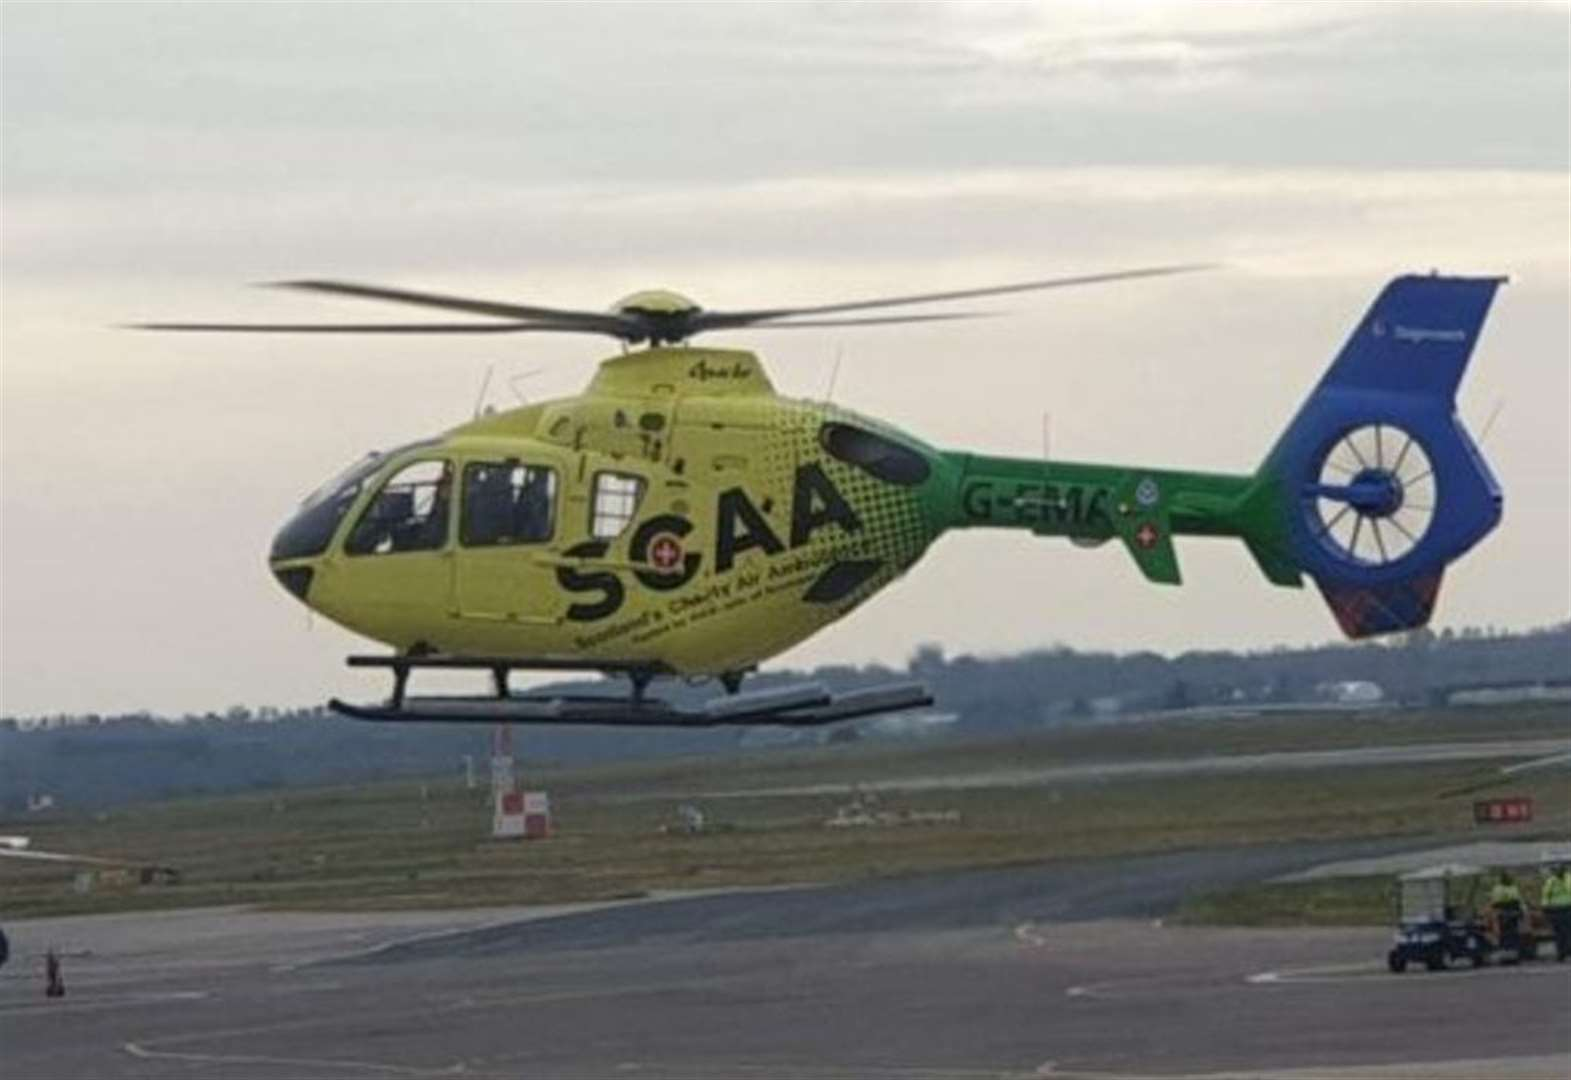 Helimed79 to enter active service on Friday.